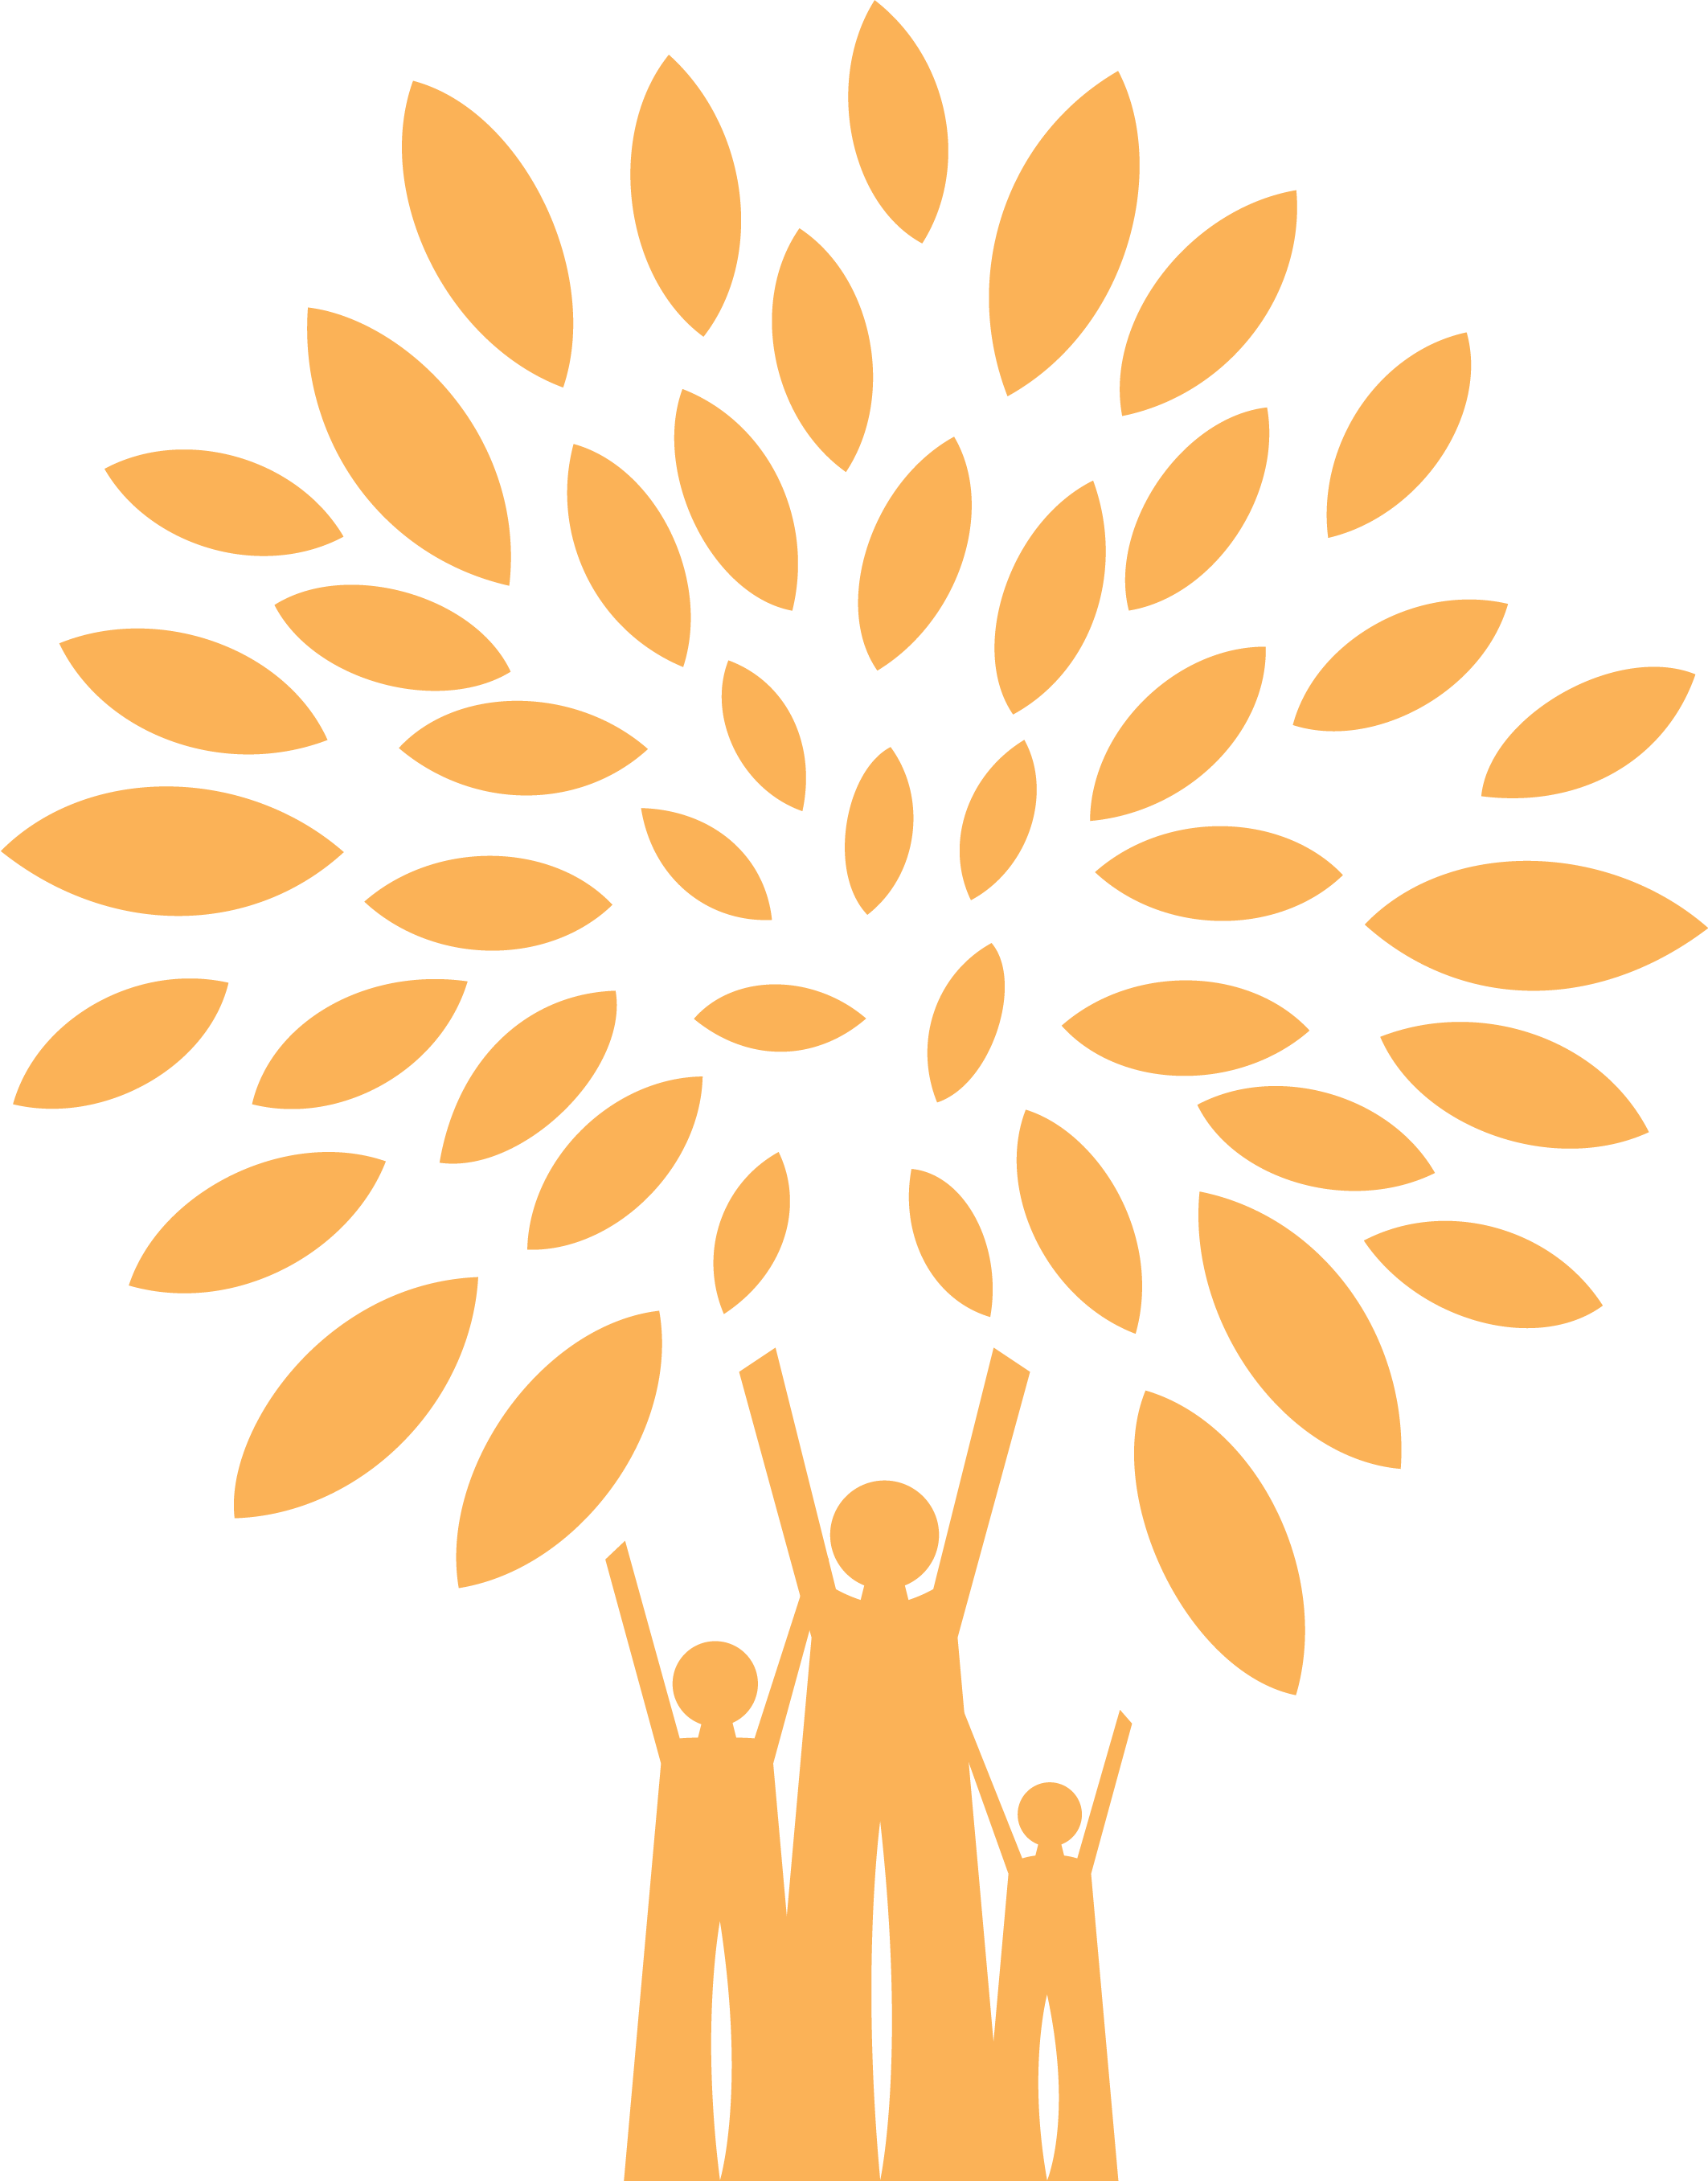 Tree_logo_color-01.png